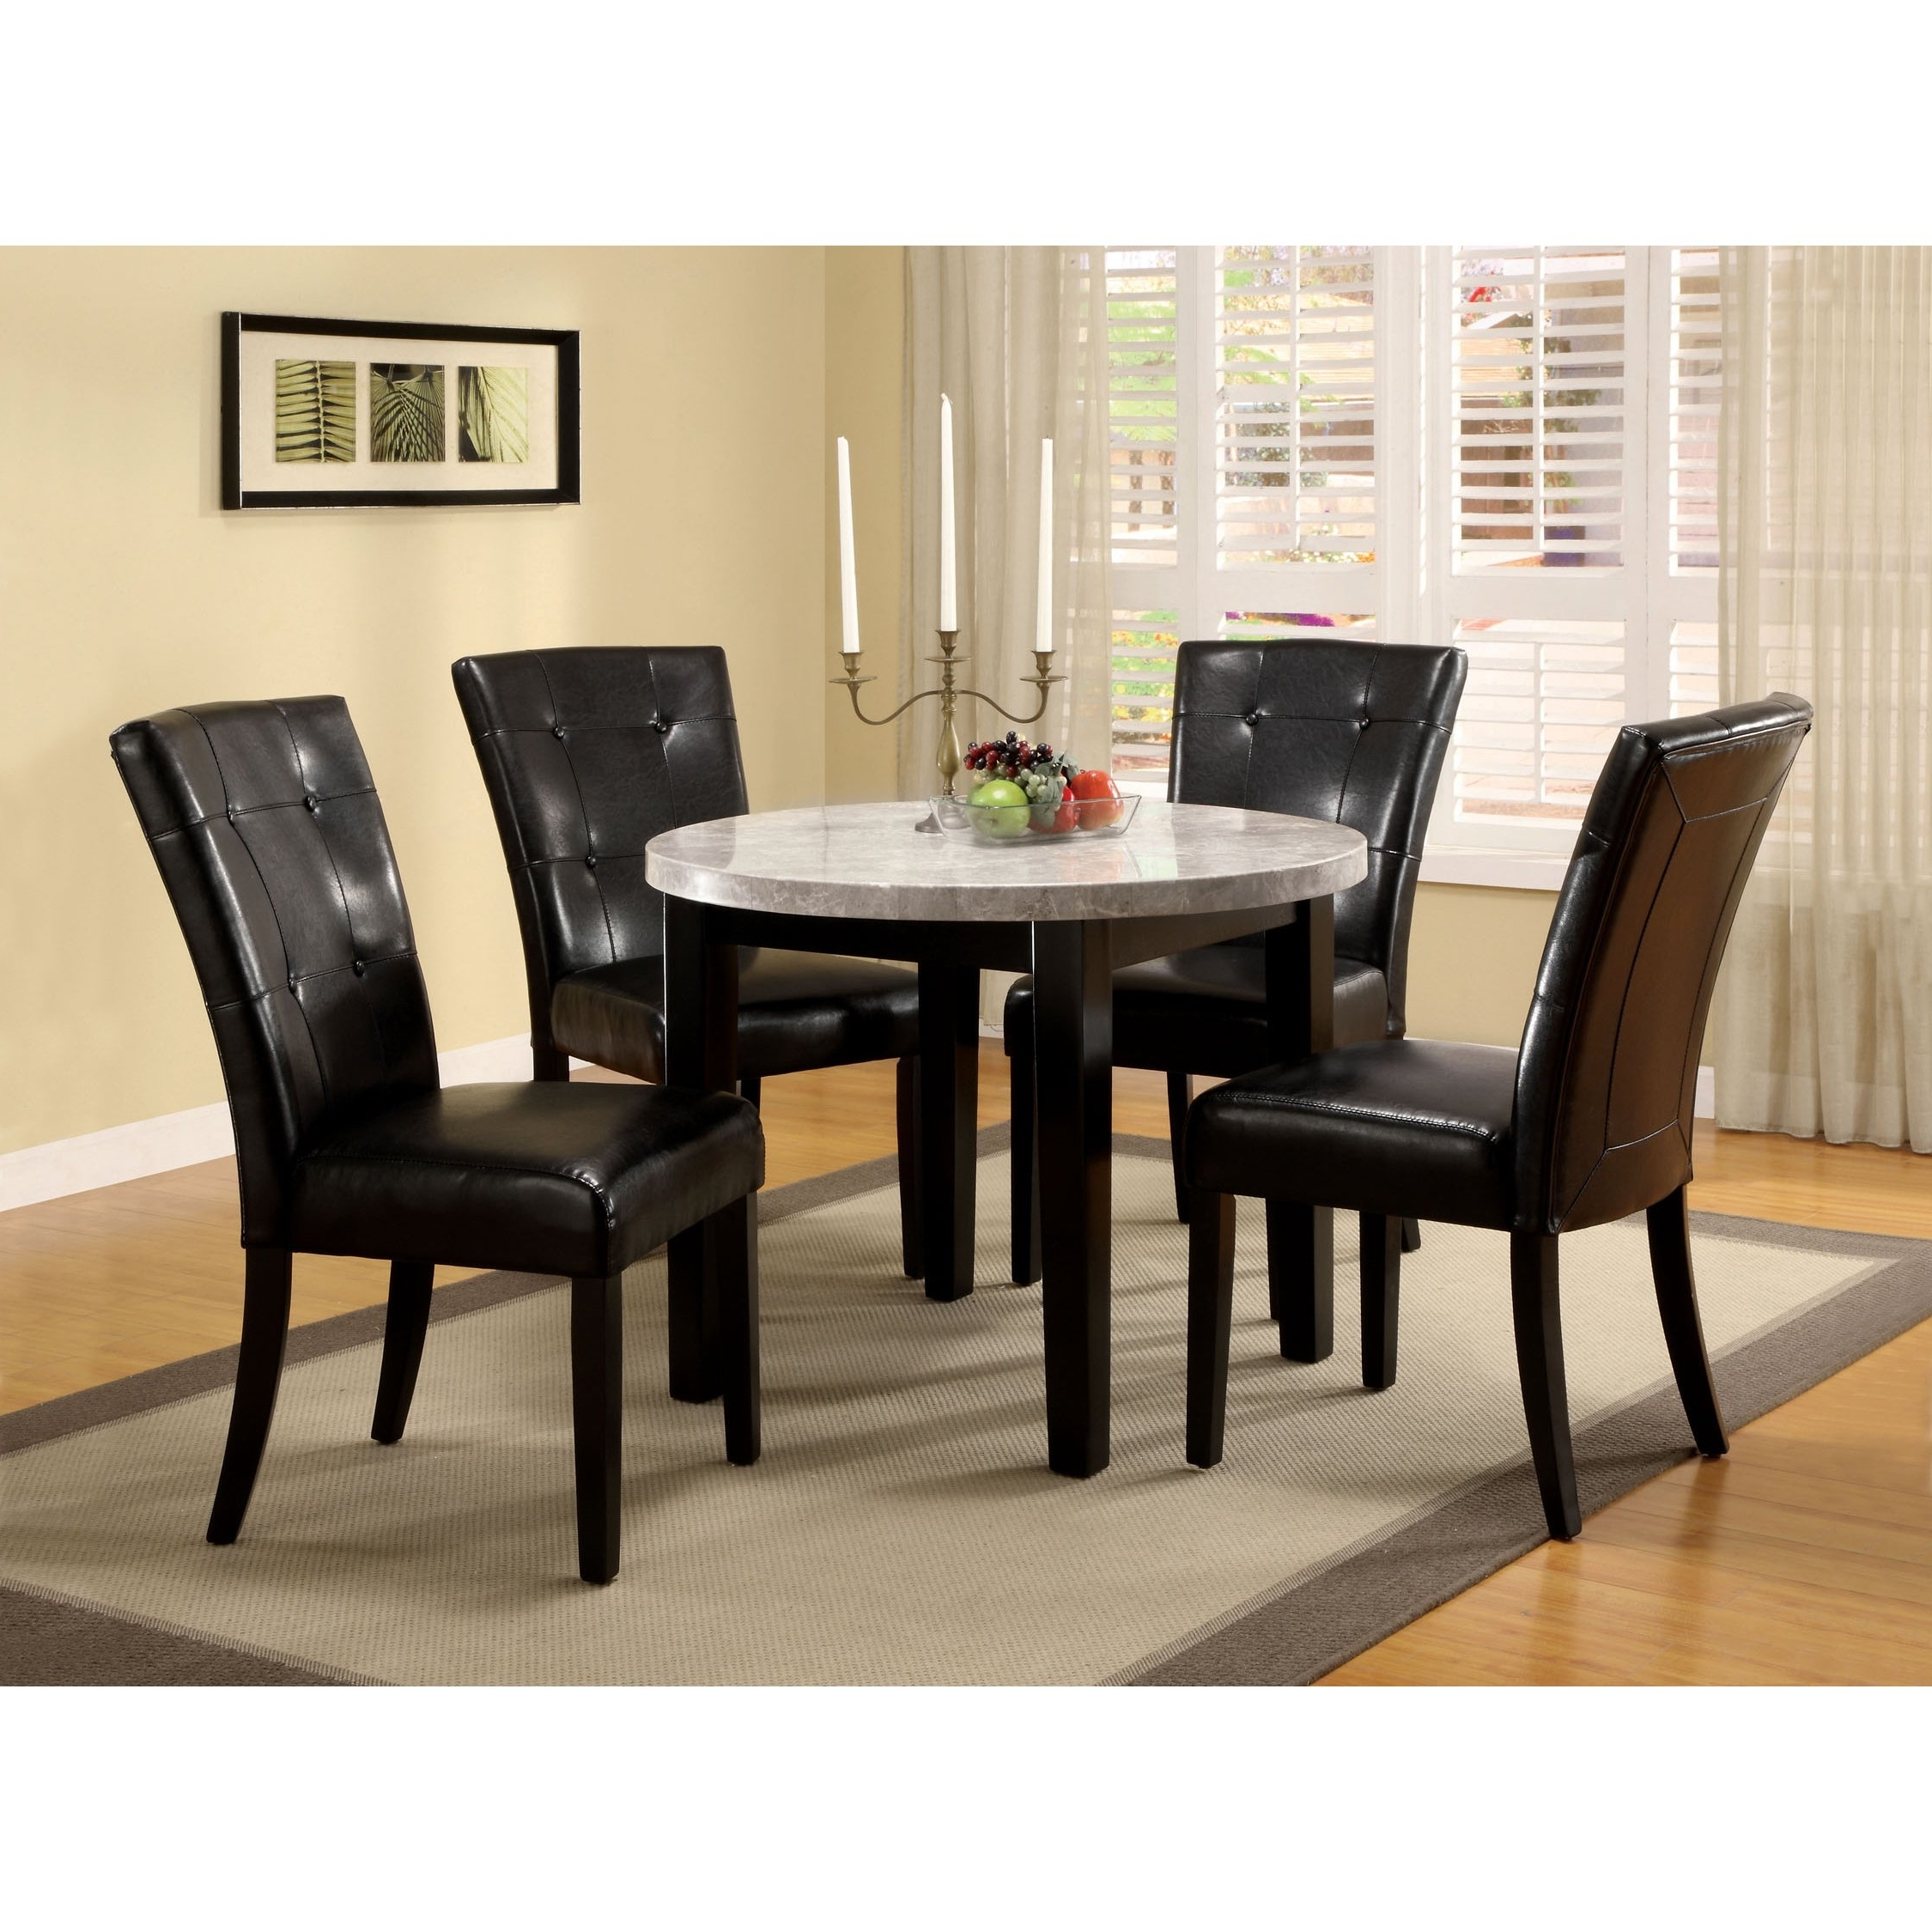 Shop Furniture Of America Perican Round 5 Piece Genuine Marble In Popular Marble Dining Chairs (View 15 of 25)